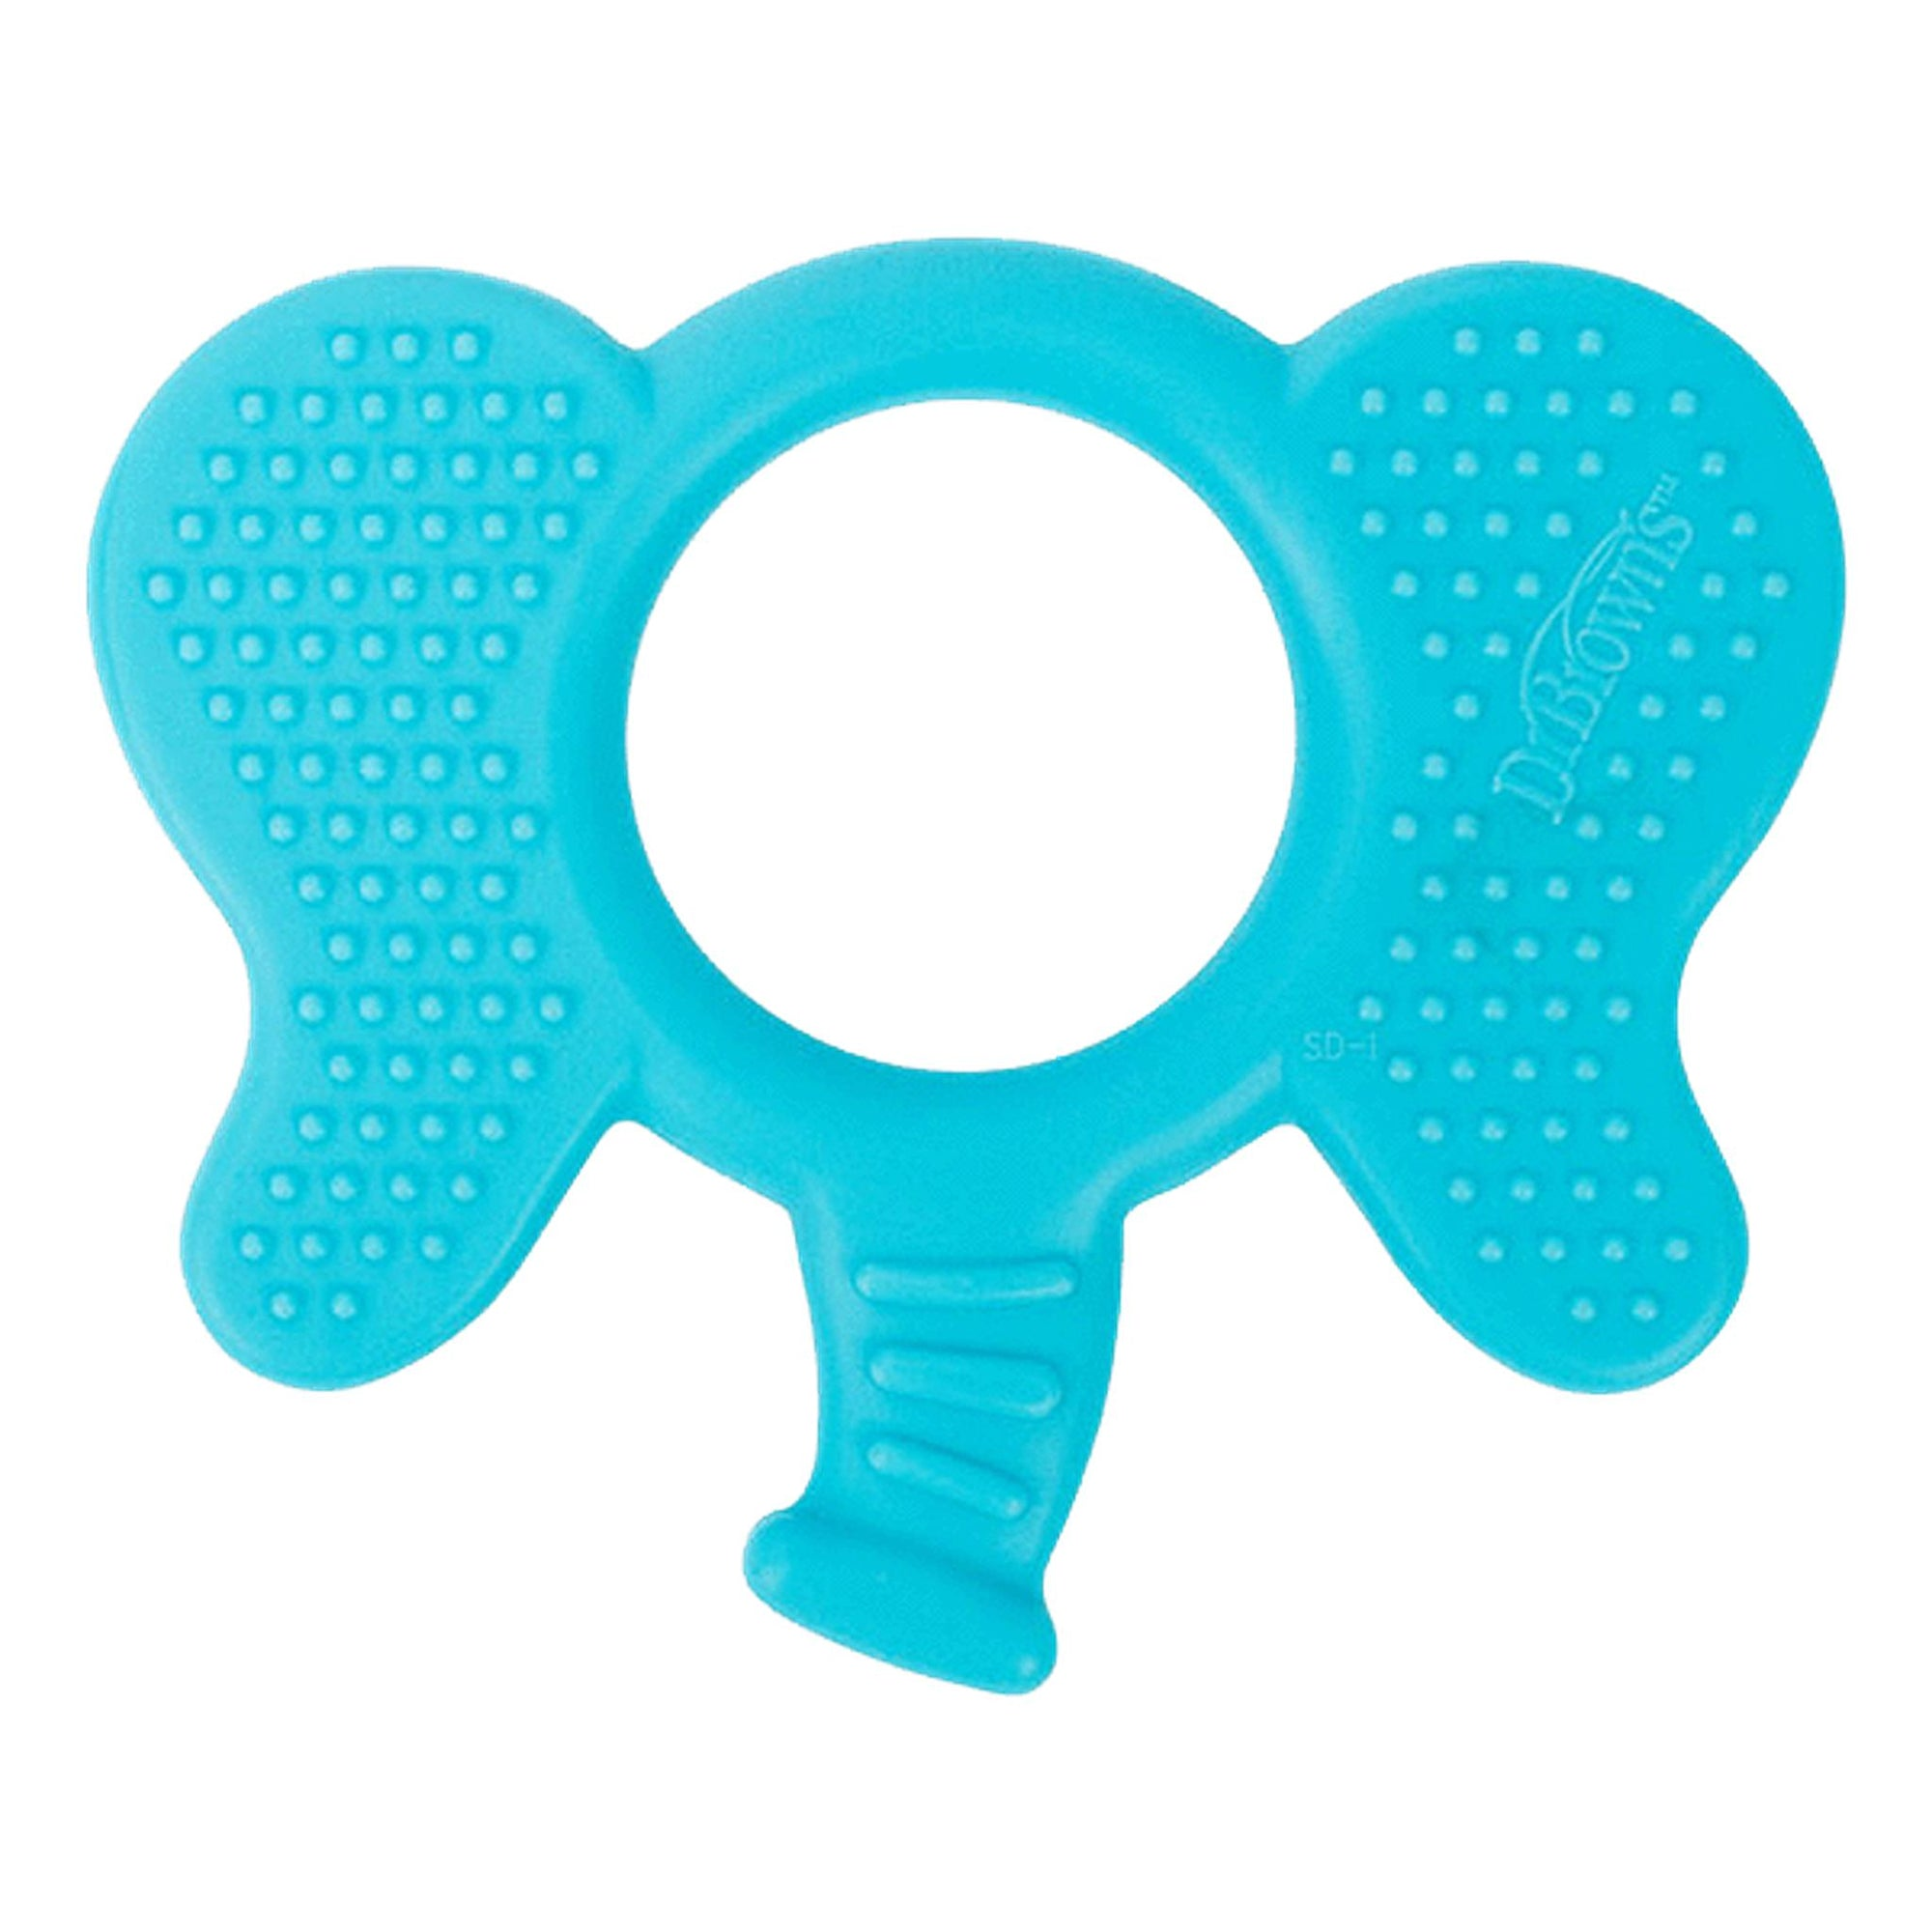 Dr. Brown's Flexees Friends Teether - Elephant-Teether-Mother and Baby Shop Kenya's #1 Online Baby Shop